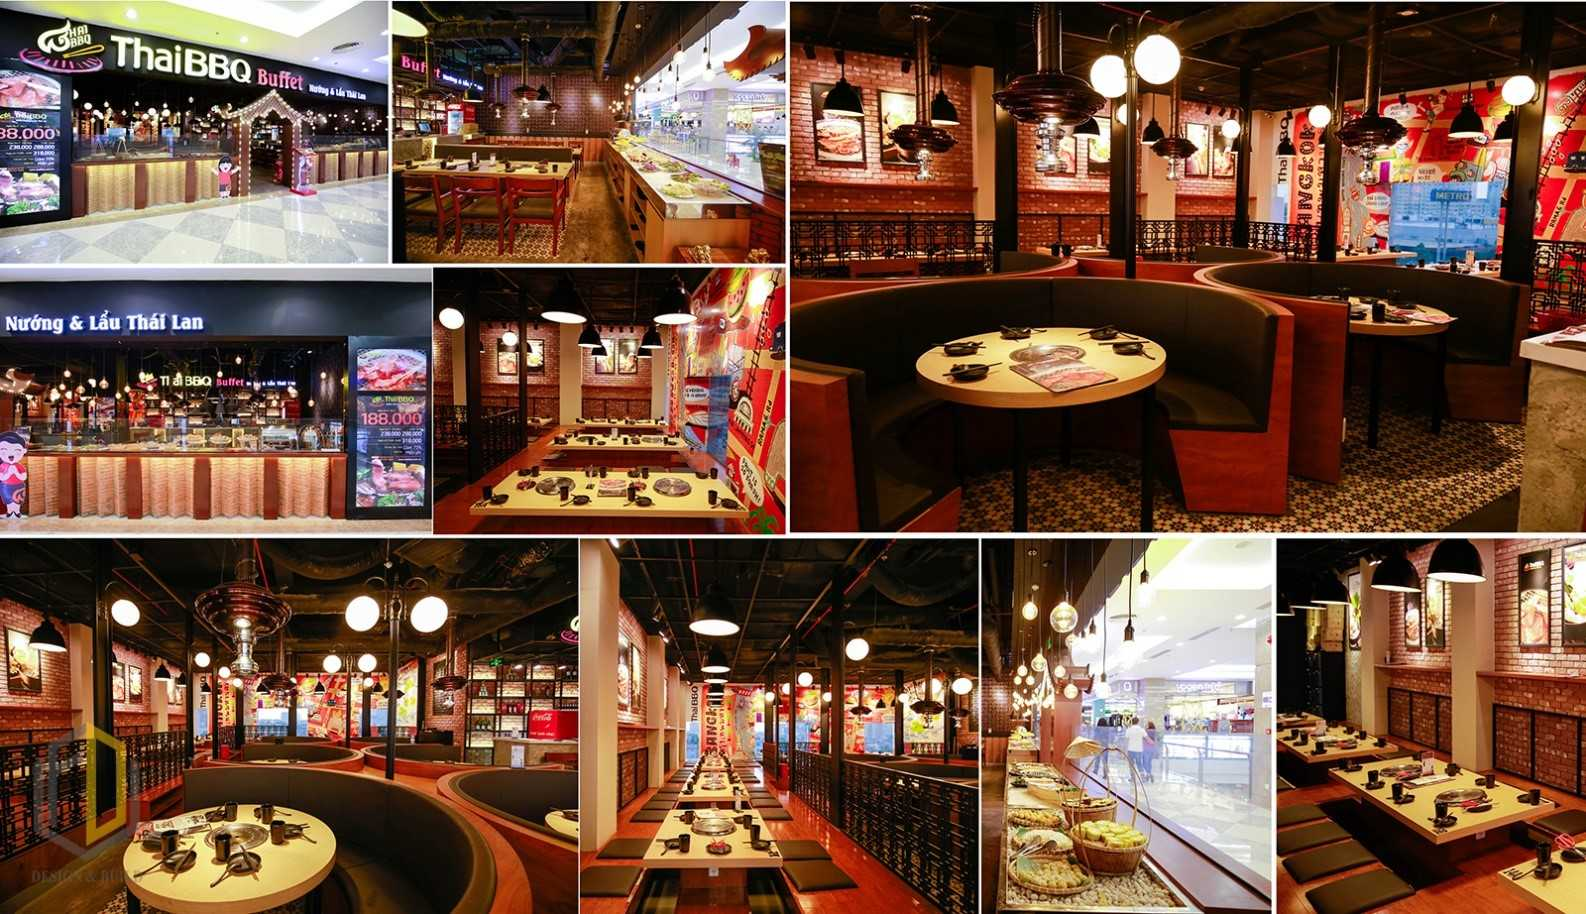 I.F. D GROUP – SPECIALIZING IN RESTAURANT INTERIOR DESIGN